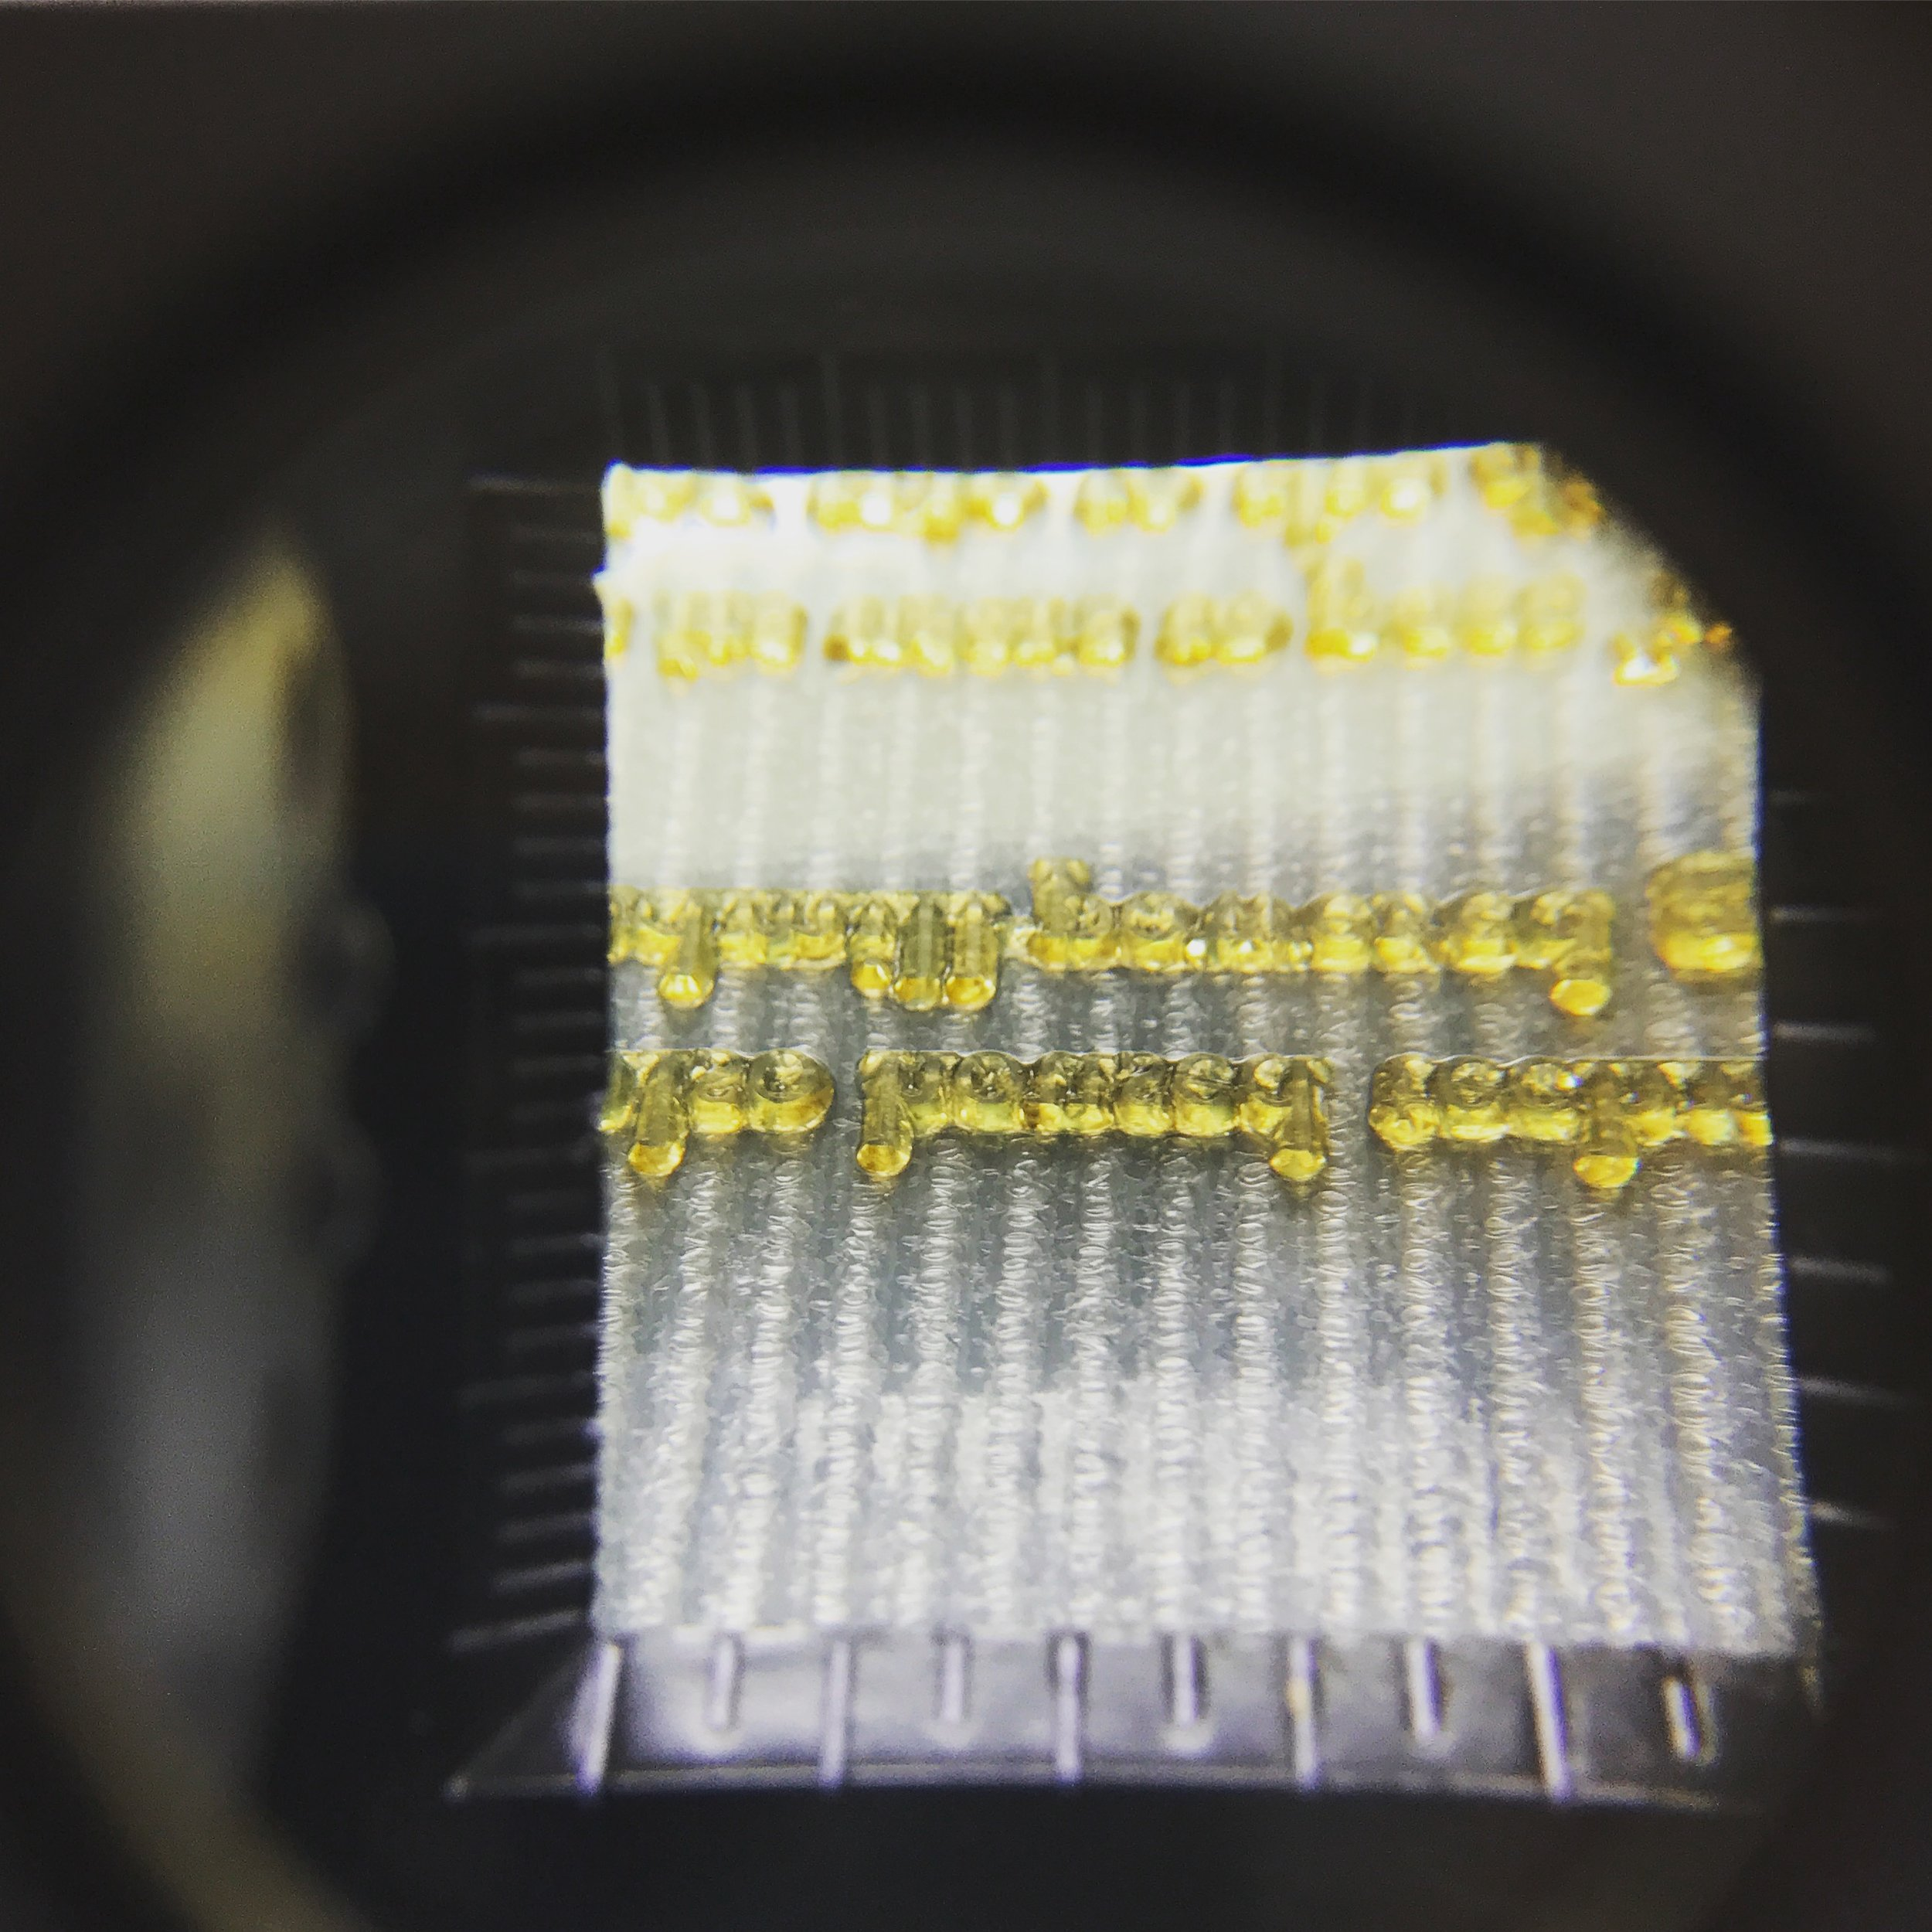 A close-up of some photopolymer